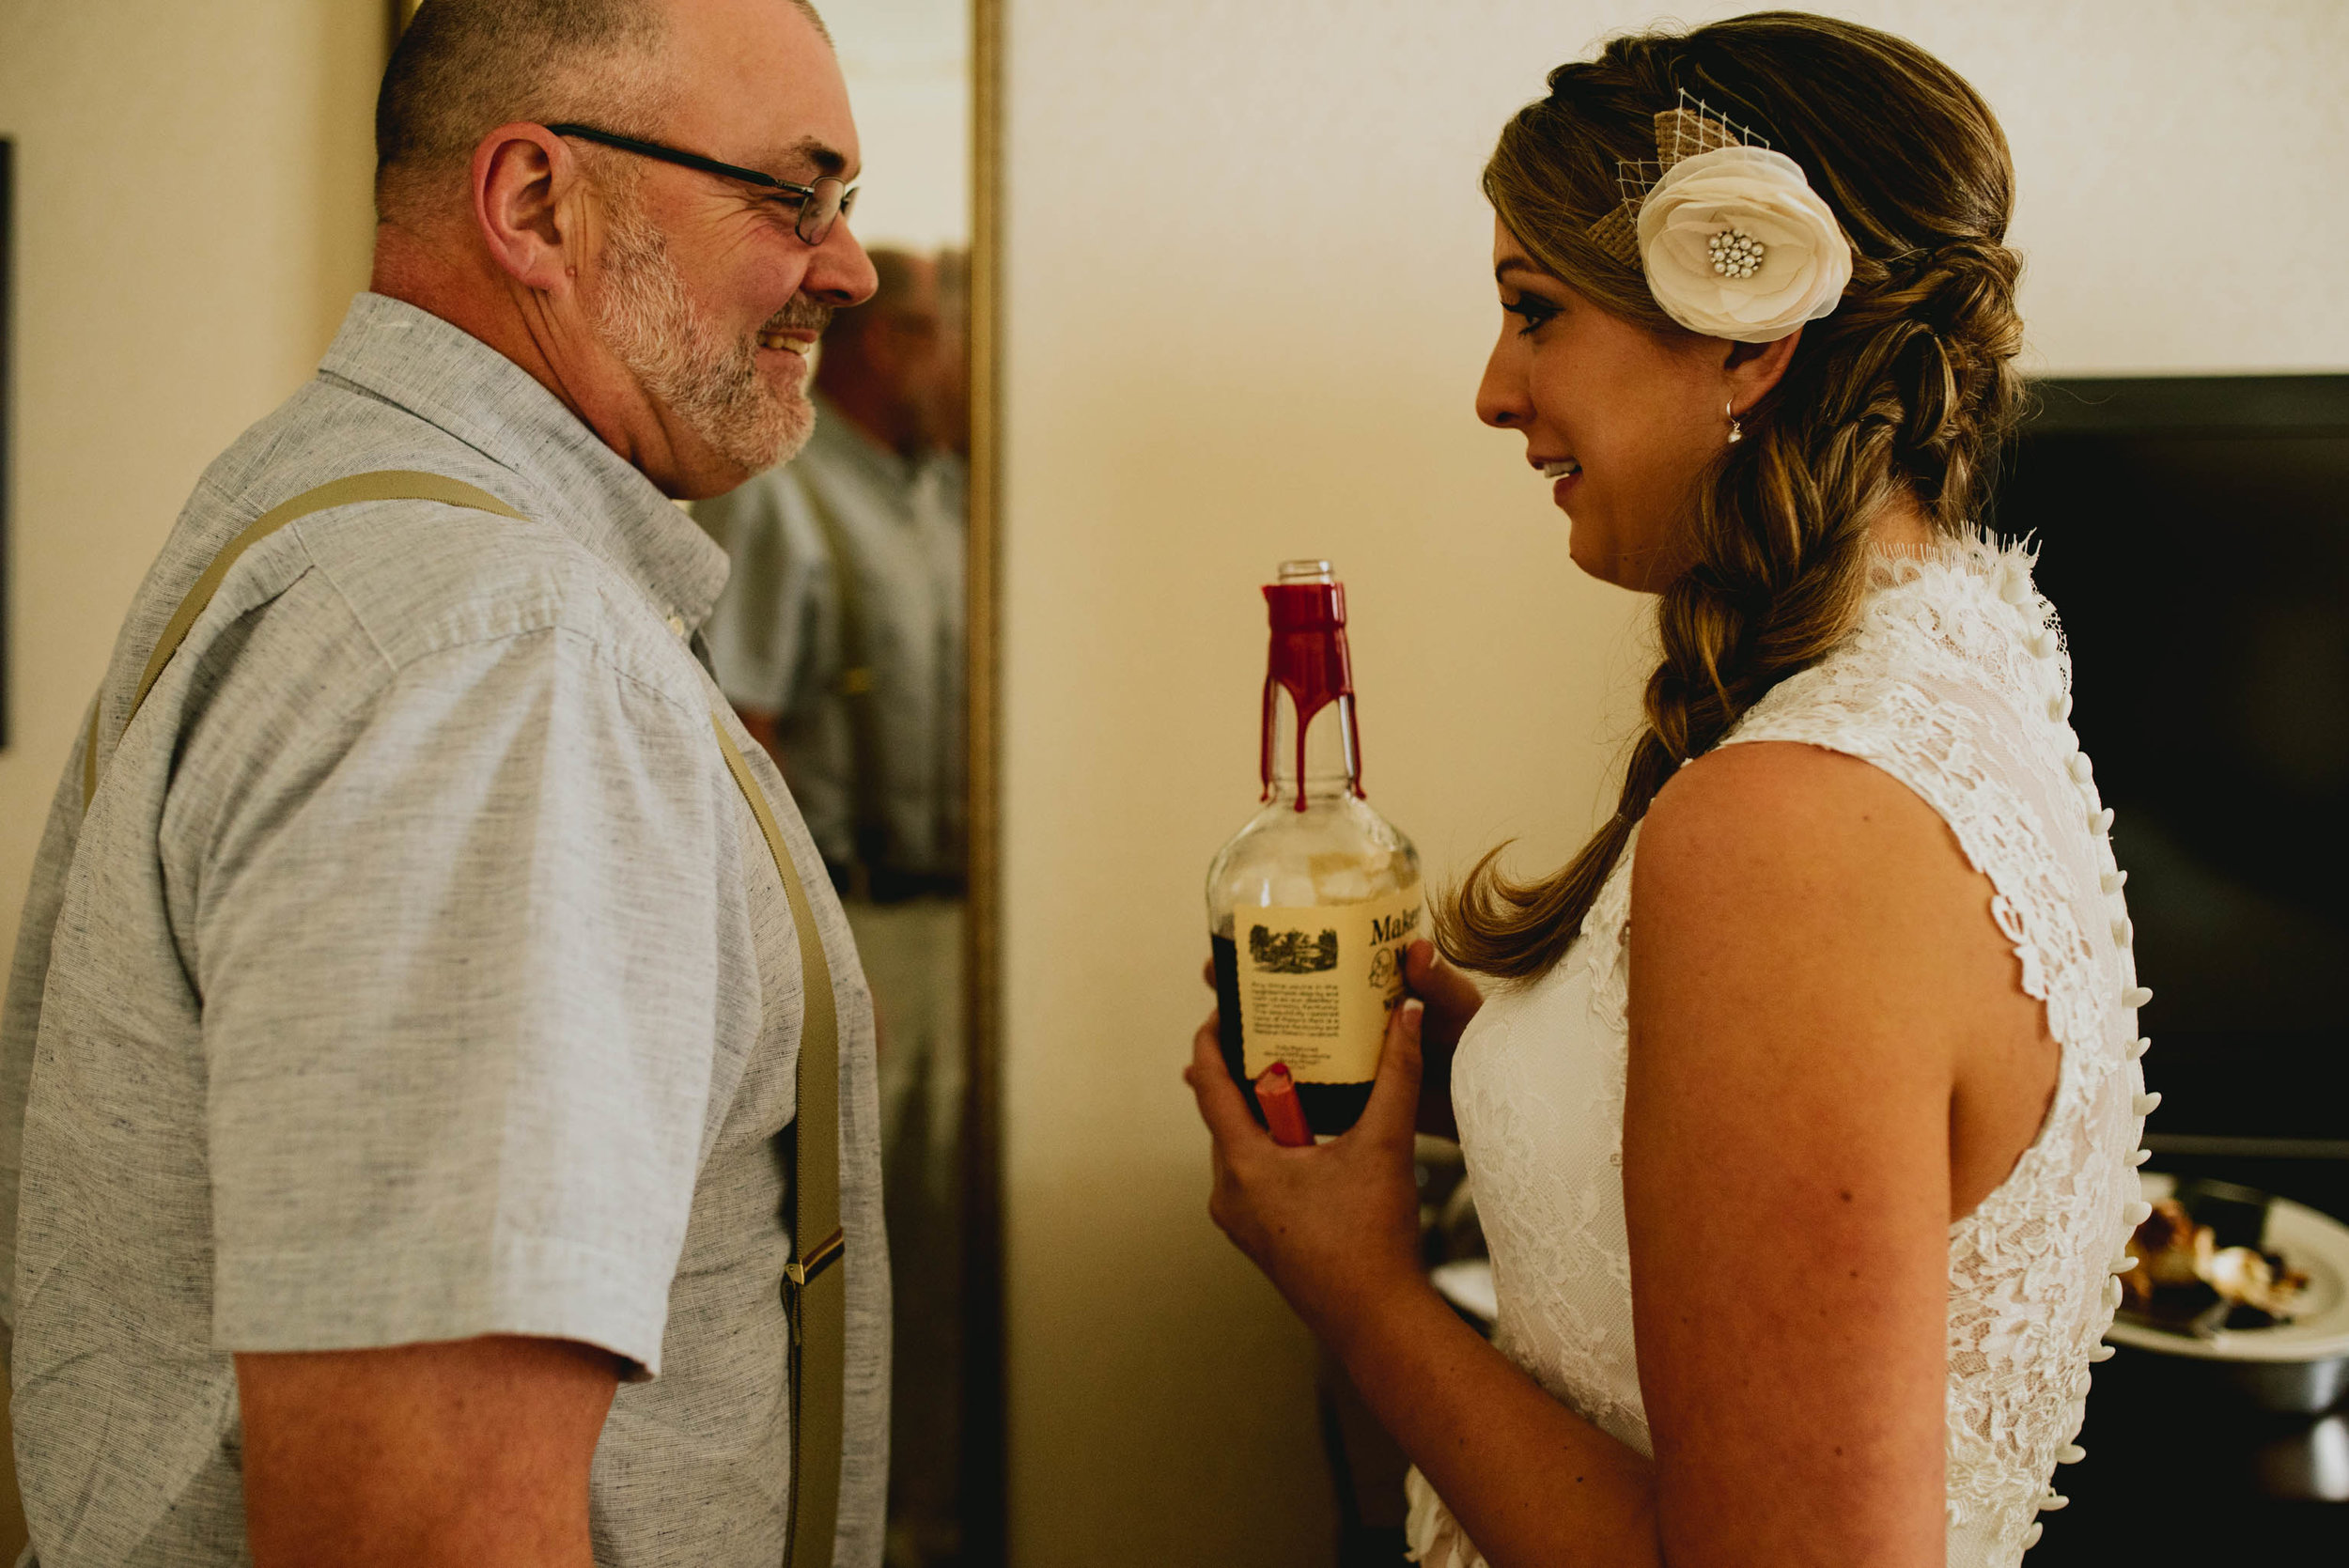 bride suggesting a celebratory shot of whiskey with her dad